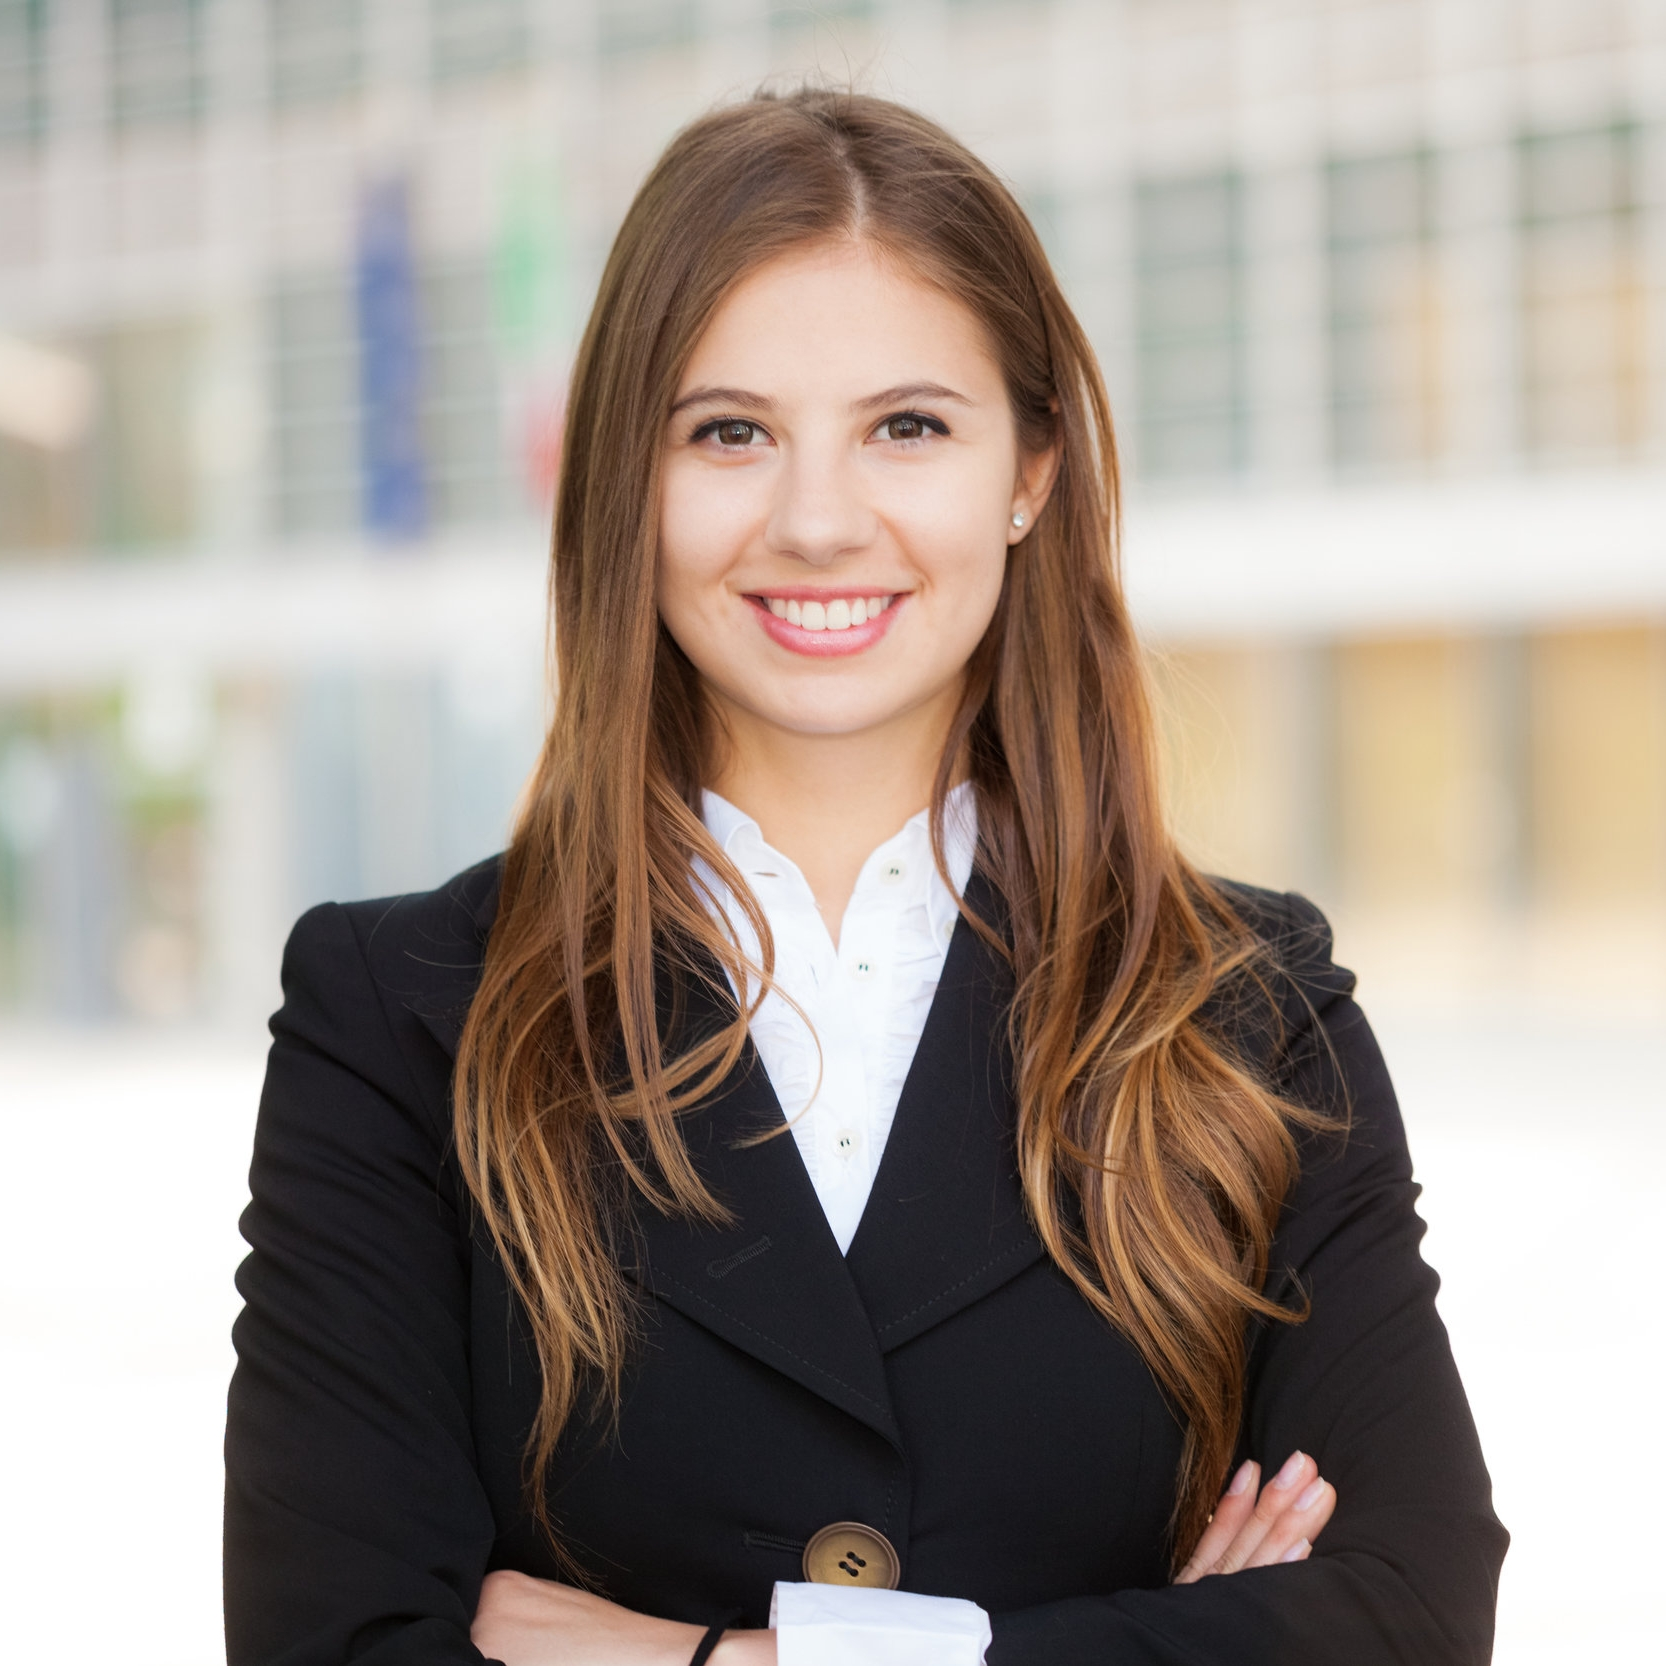 Businesswoman-portrait.jpg